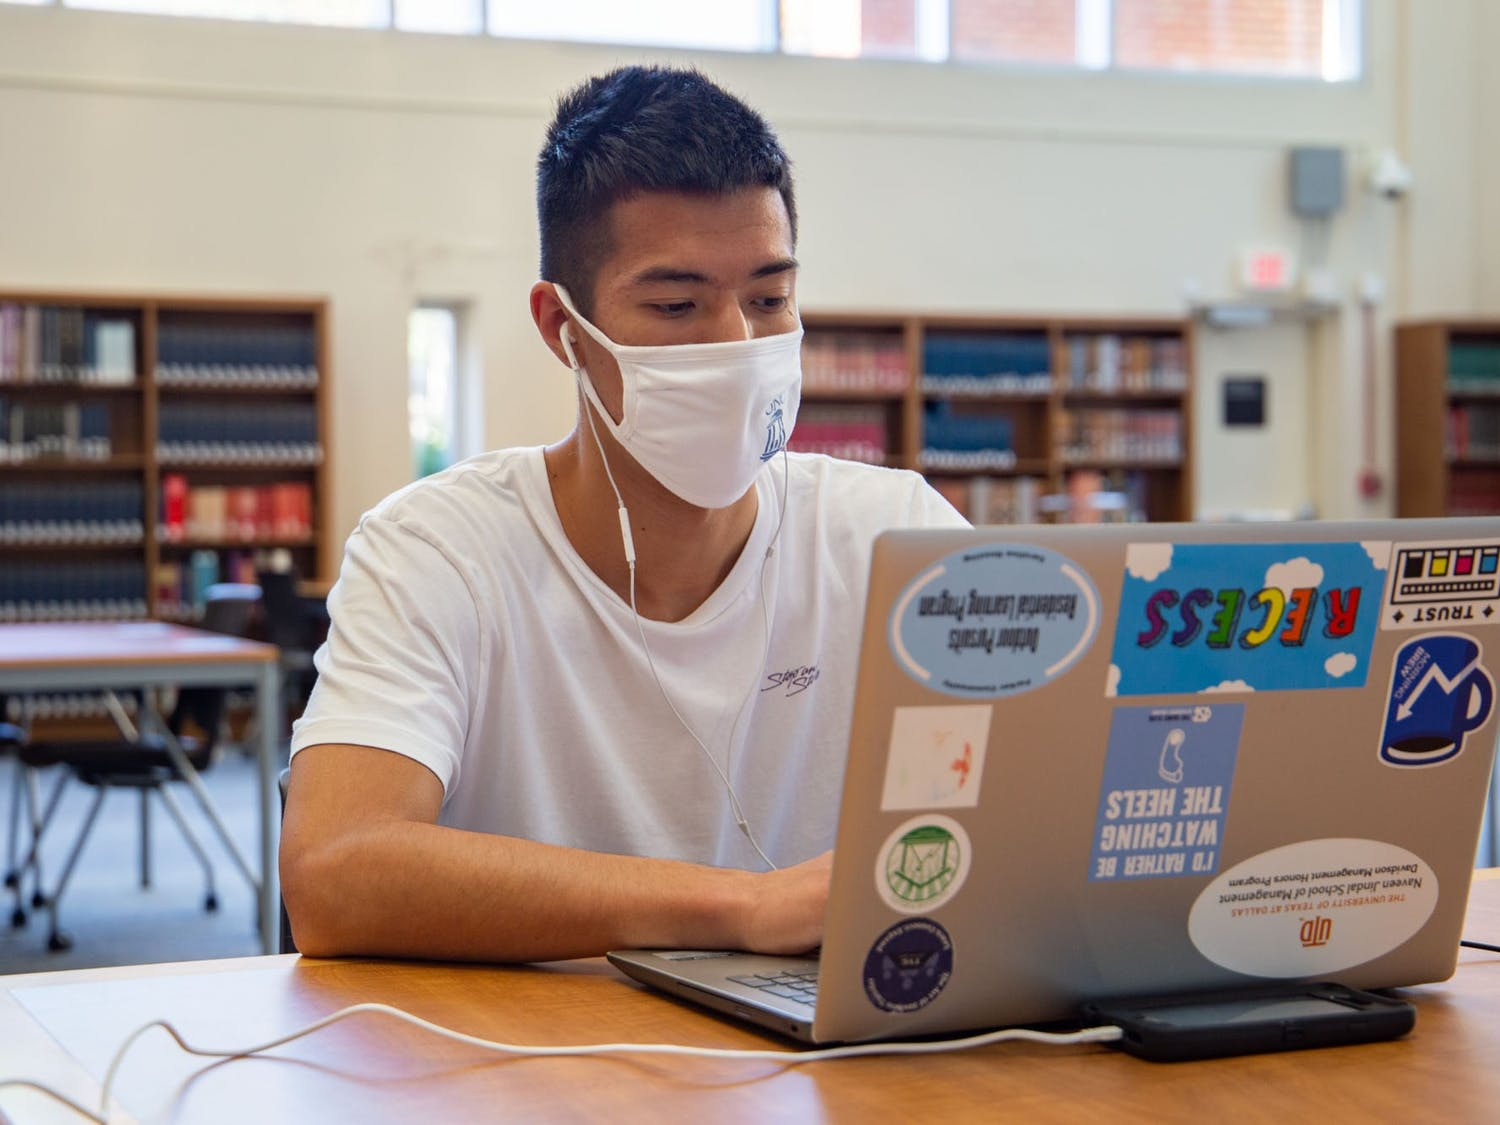 A student studies in Davis Library on Thursday, Oct. 8, 2020, and many students seem to be returning to reopened study spaces on campus.